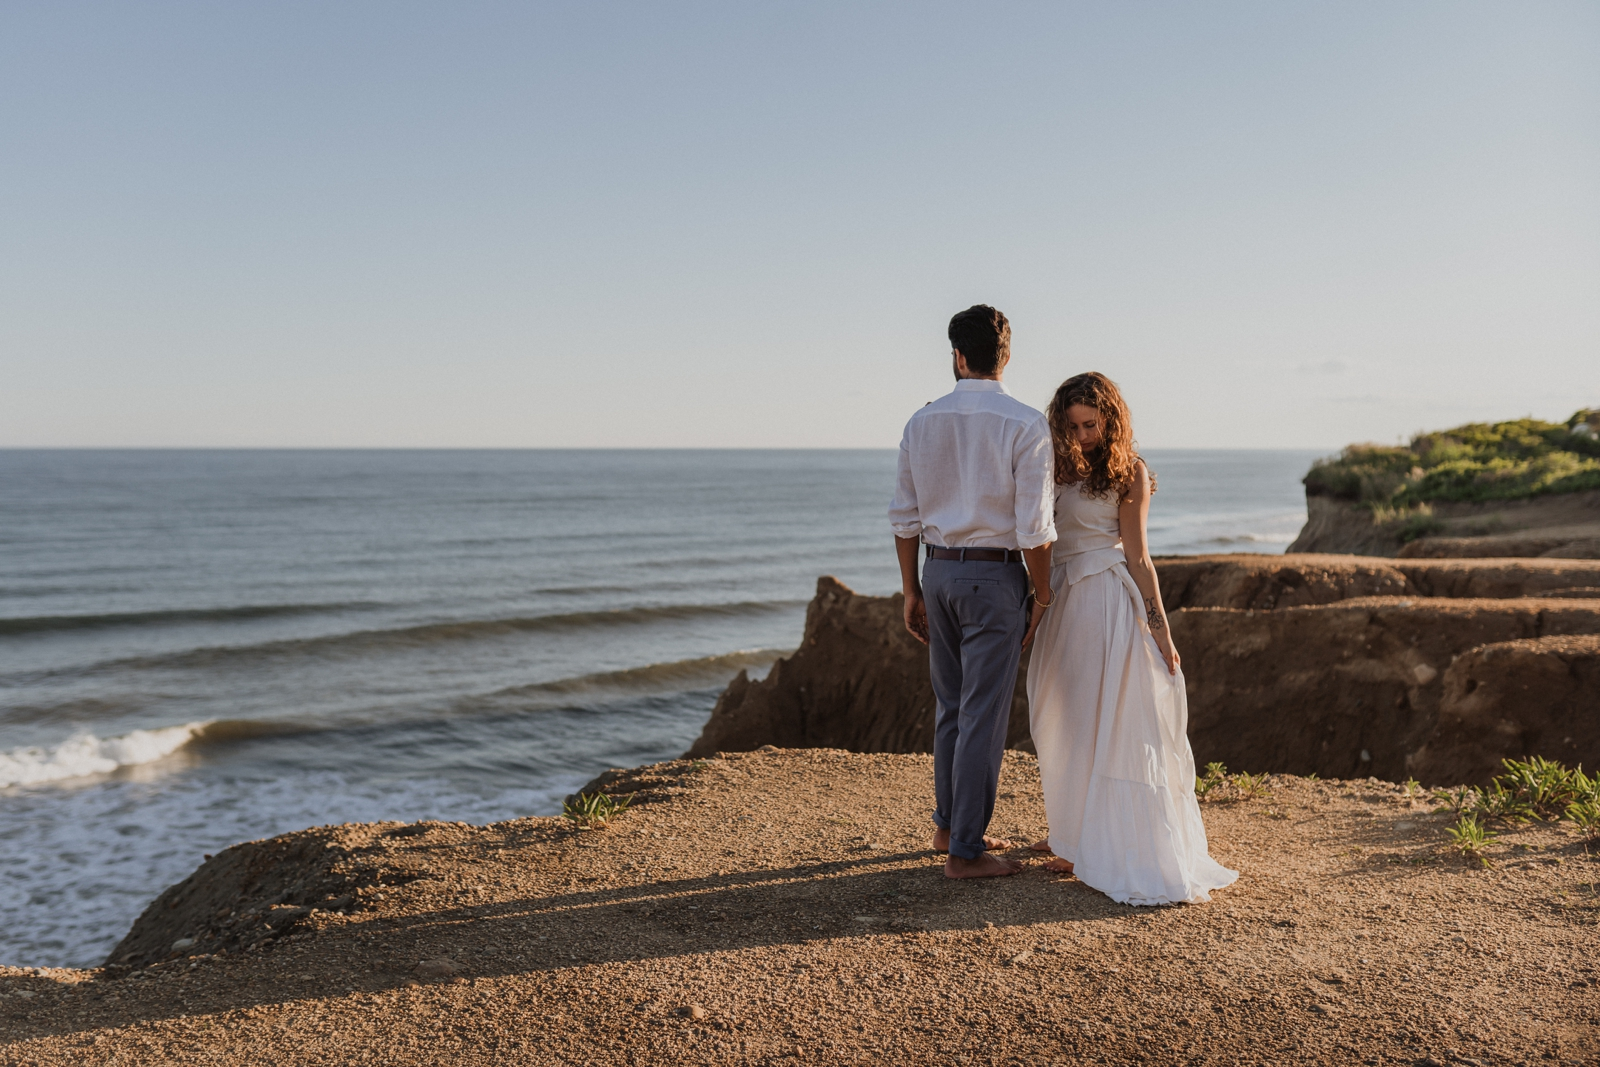 JJP_Nikki & Bud_Shadmoor_Montauk_NY_Cliff Engagement Session9.jpg_blog.jpg